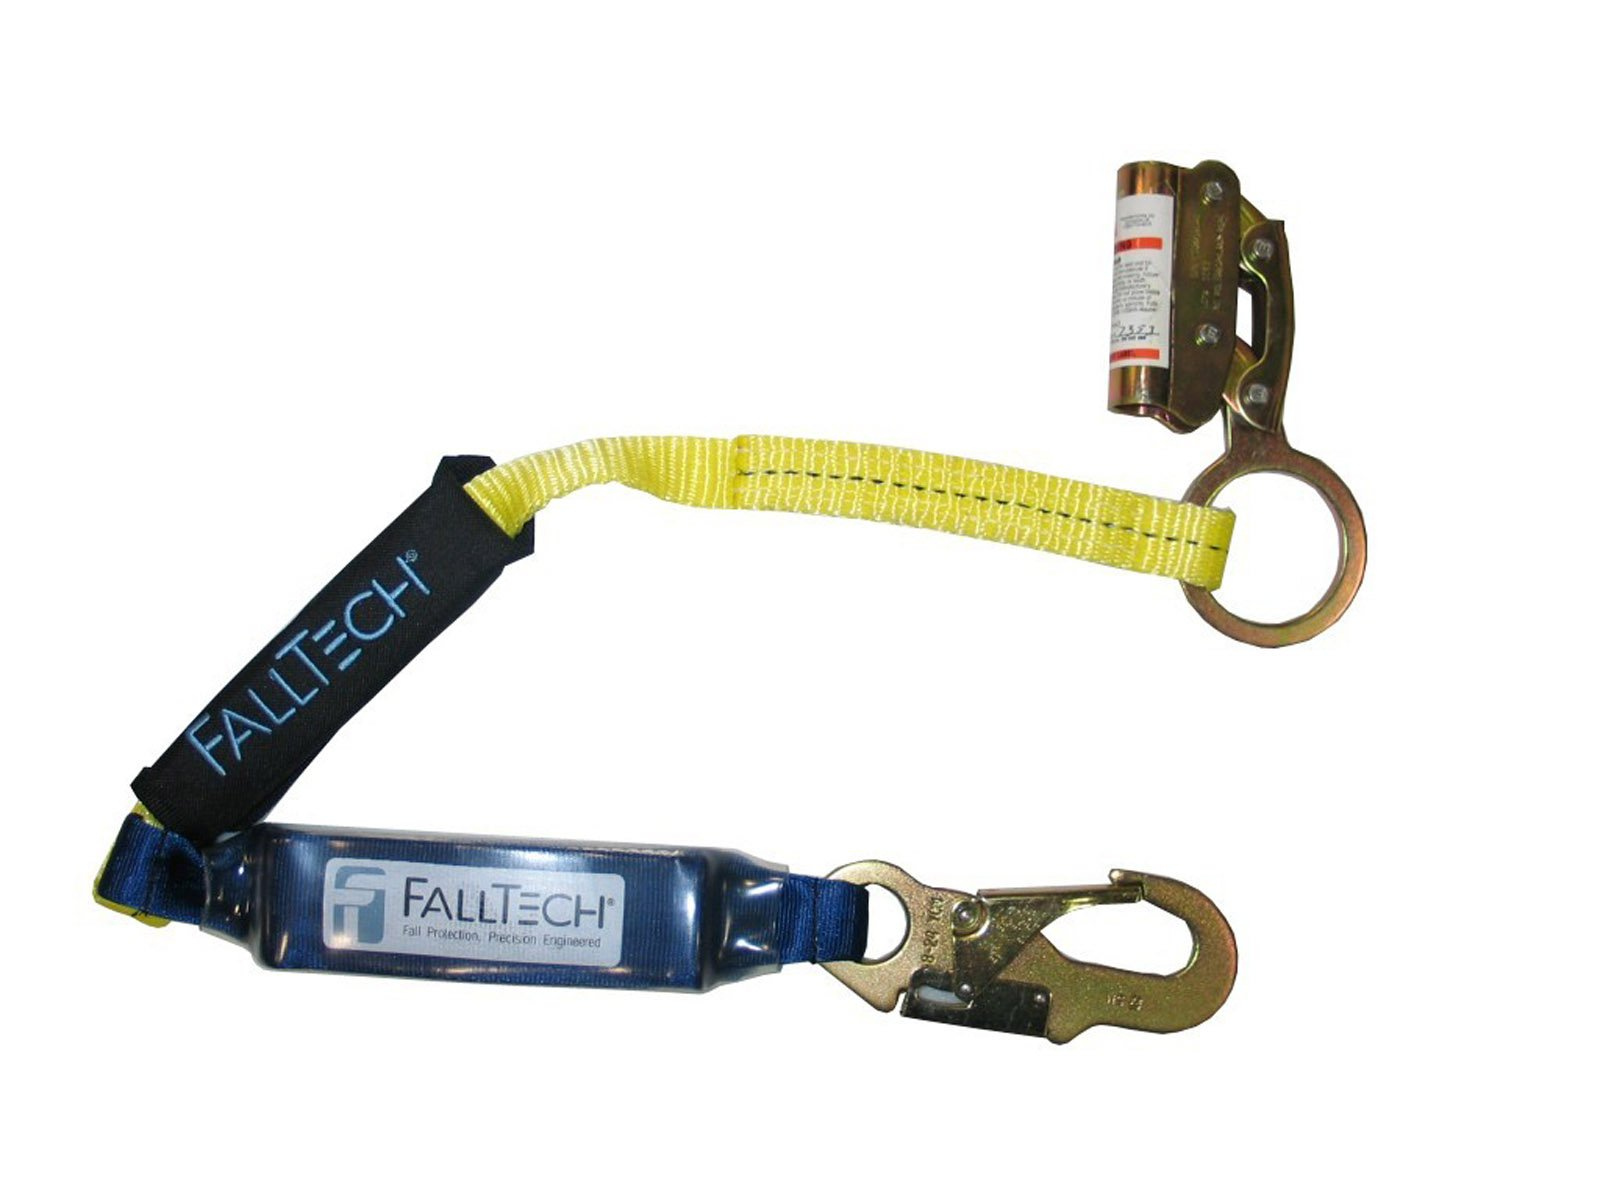 FallTech 8353LT Manual Grab with SoftPack 3-Foot Shock Absorbing Lanyard by FallTech (Image #1)